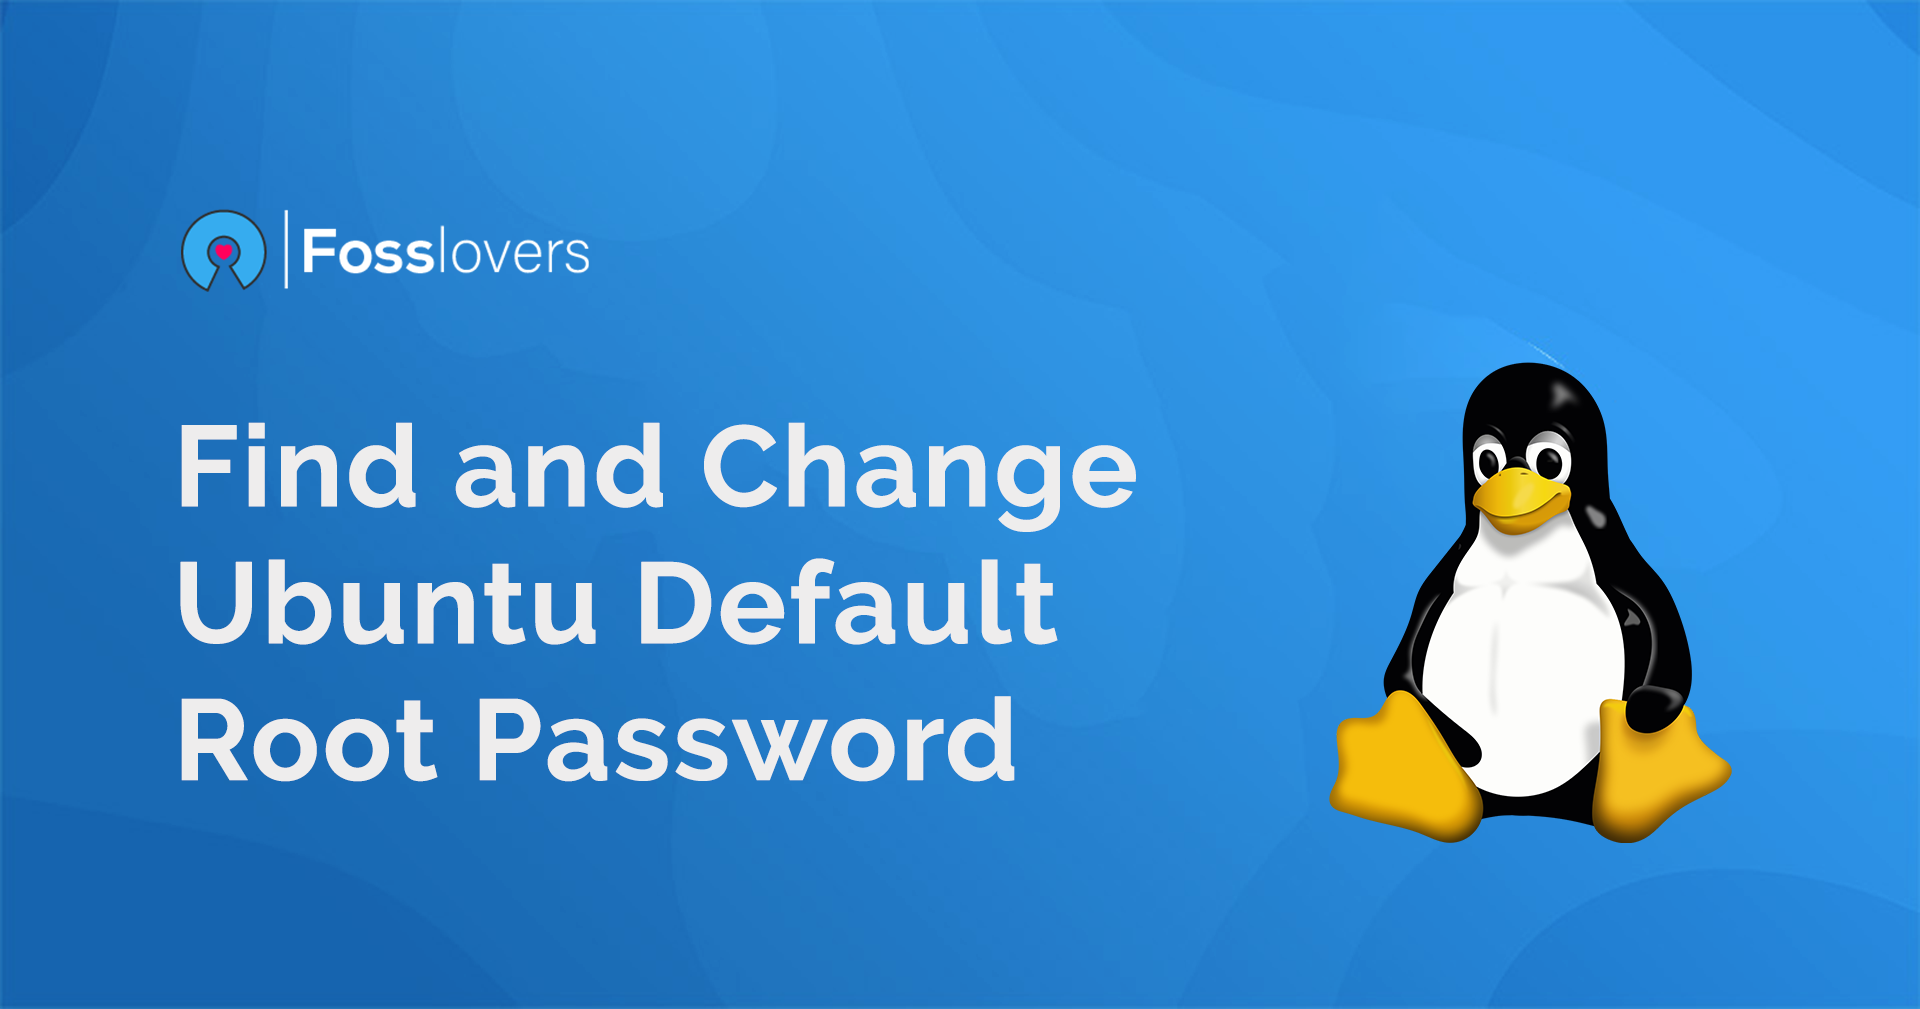 How to Find and Change Ubuntu Default Root Password